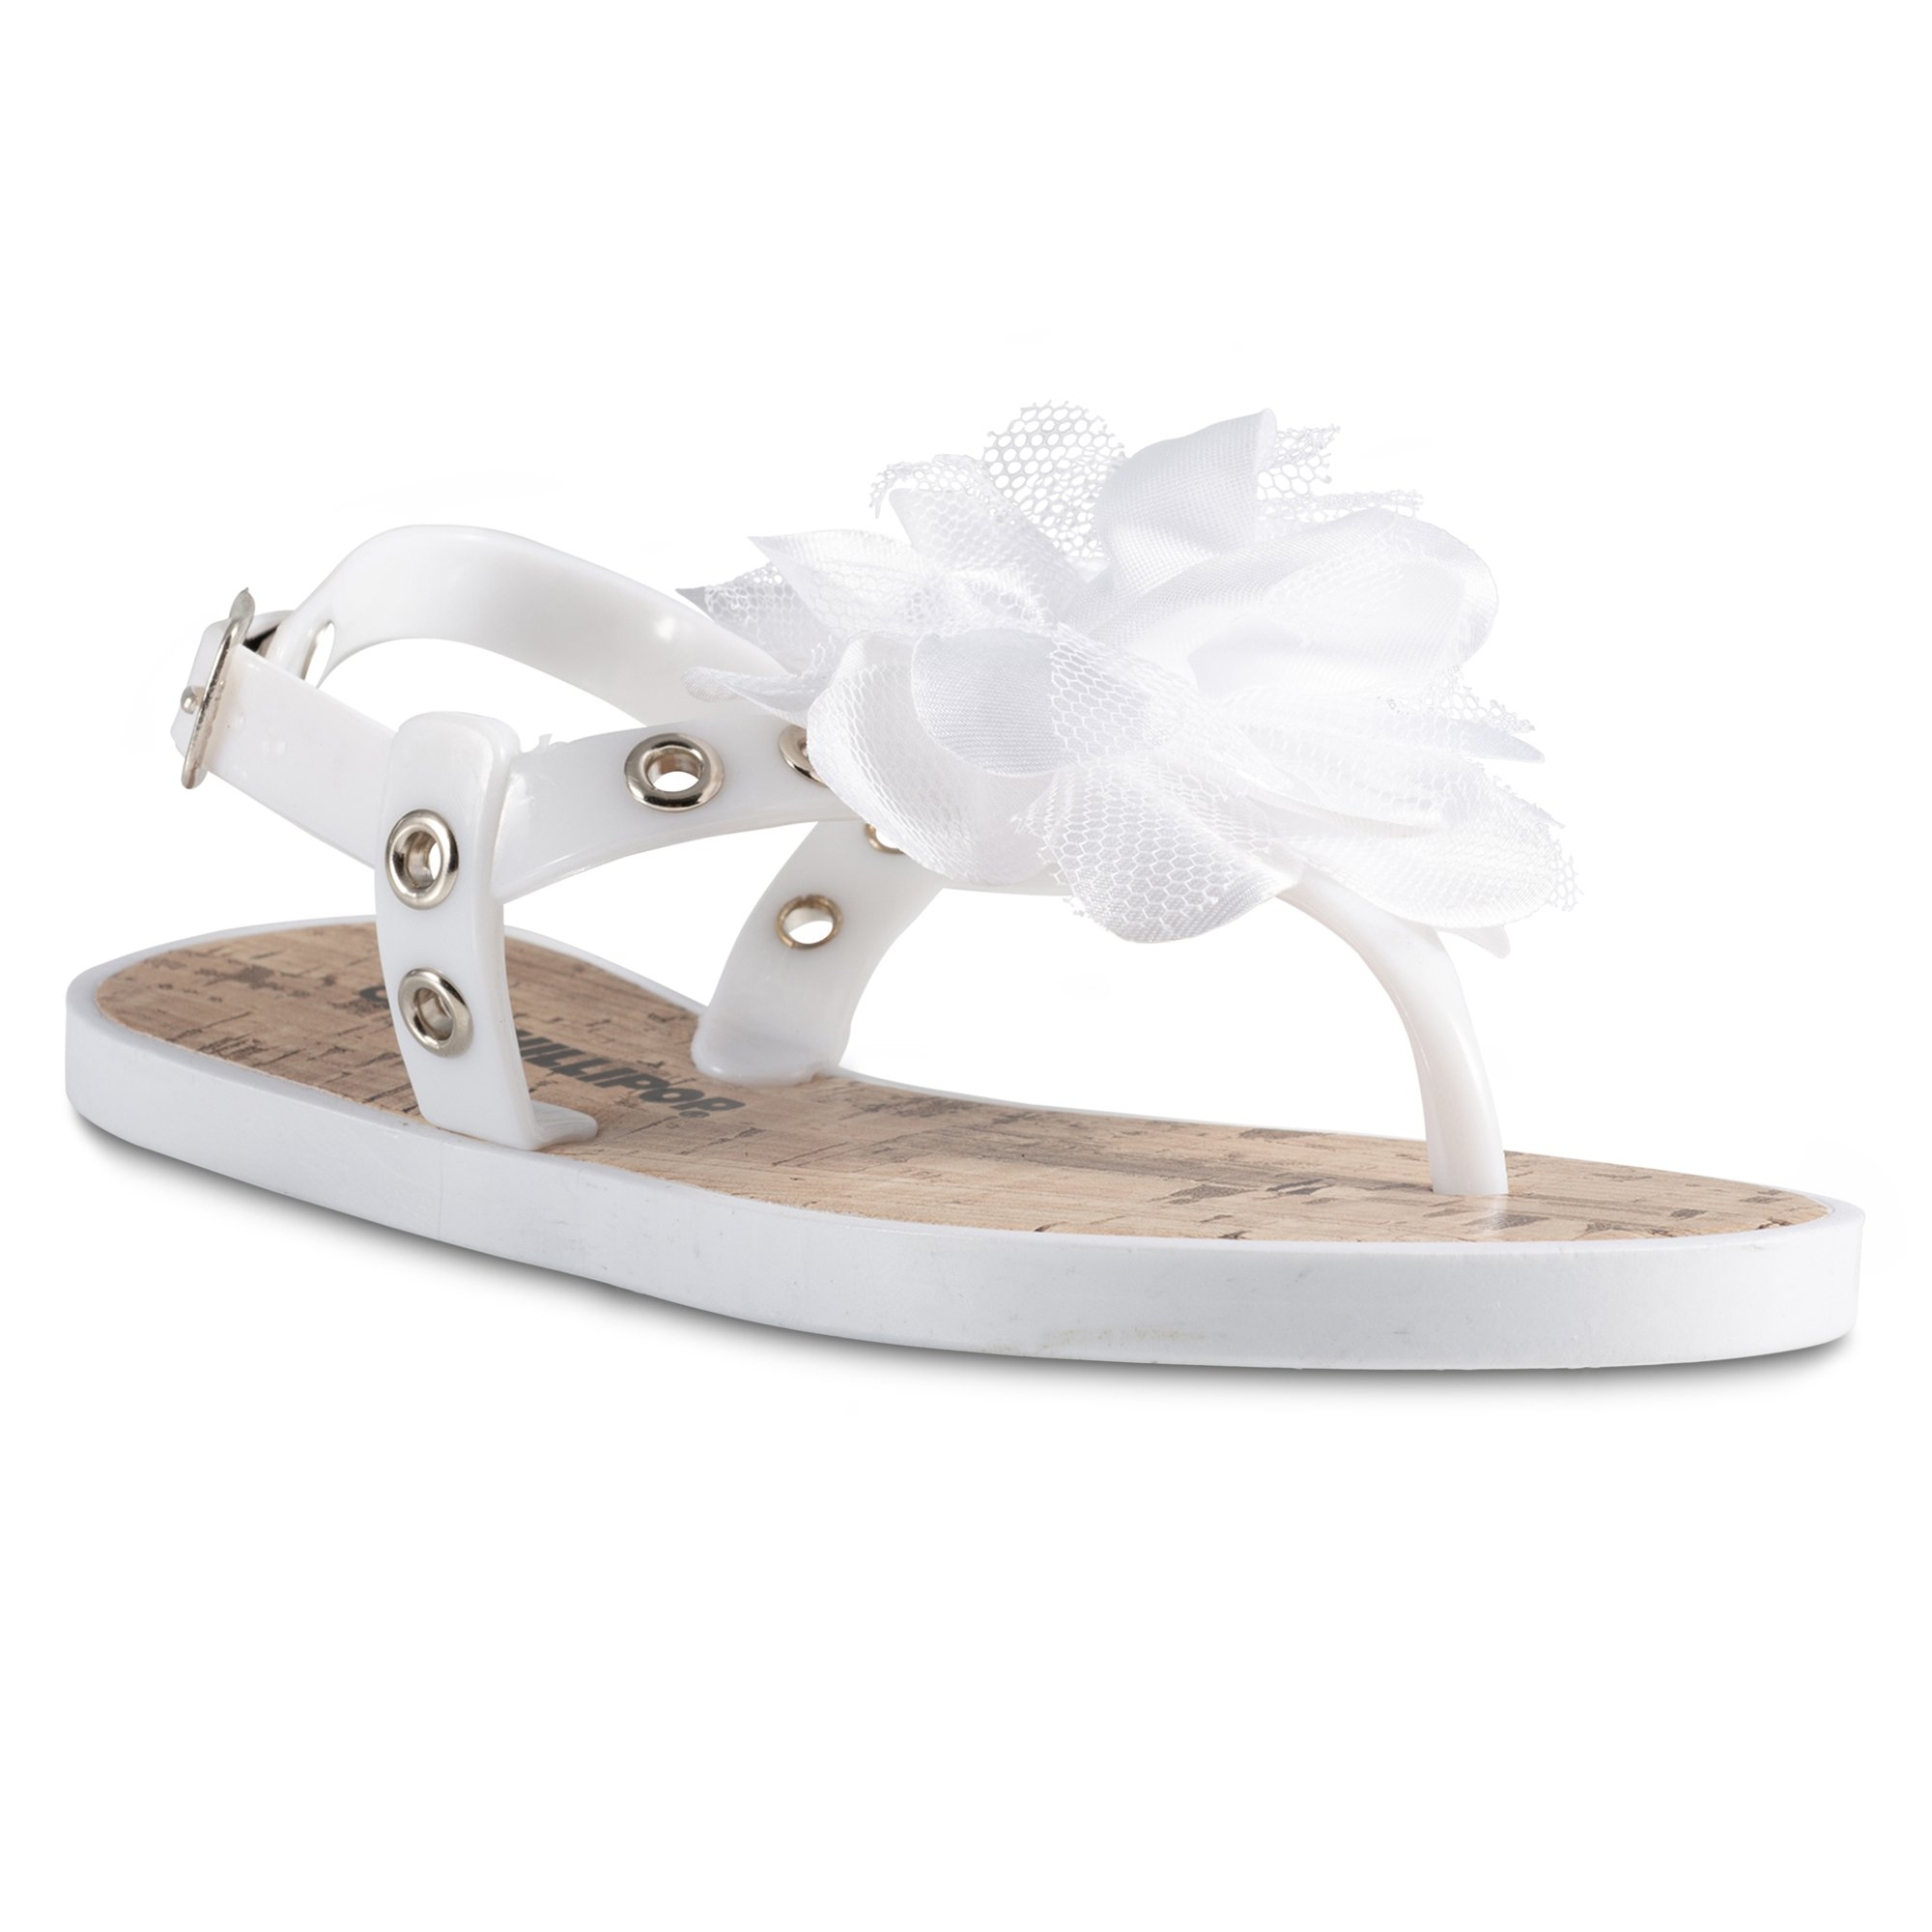 Chillipop Cork Airblown Flower Sandals for Toddler Girls, Available in All Sizes